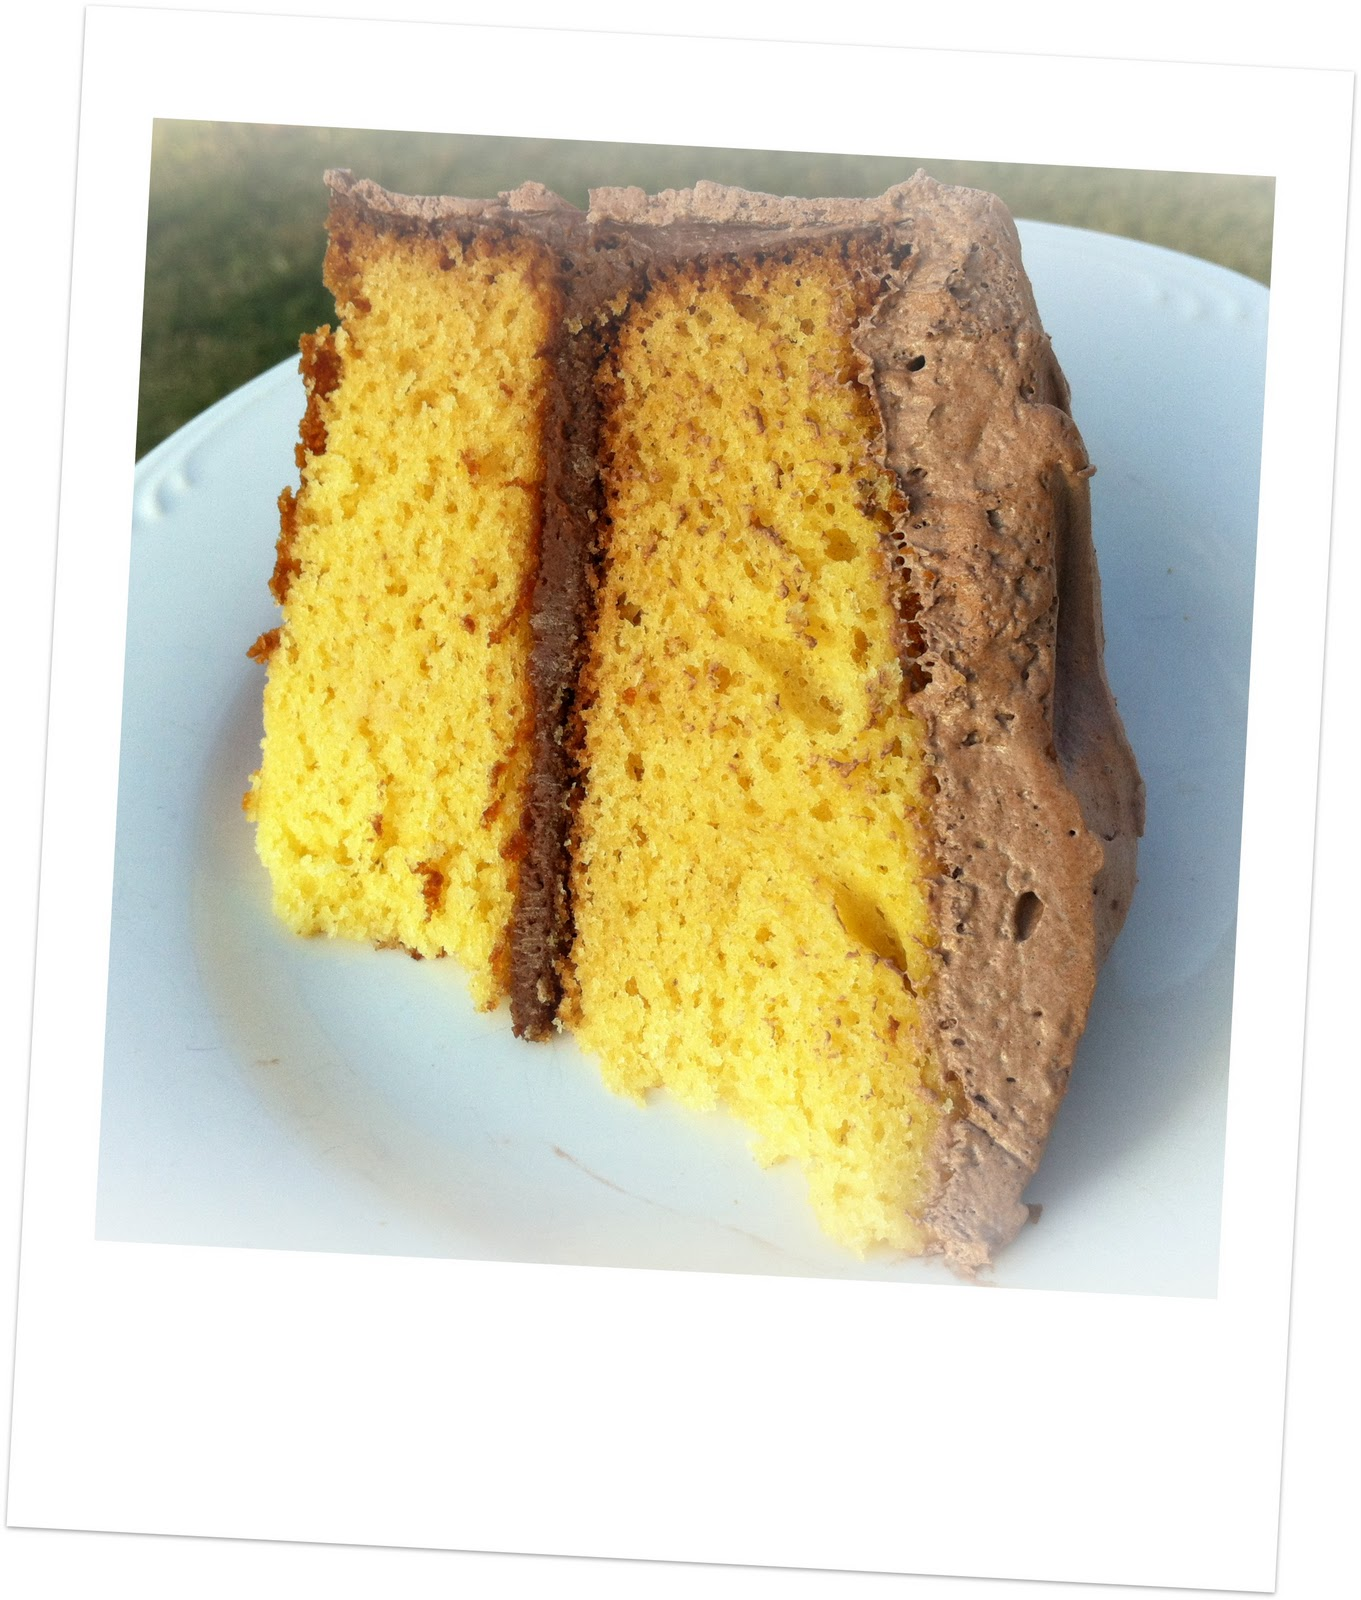 Extraordinary Life: How to Doctor a Gluten Free Yellow Cake Mix